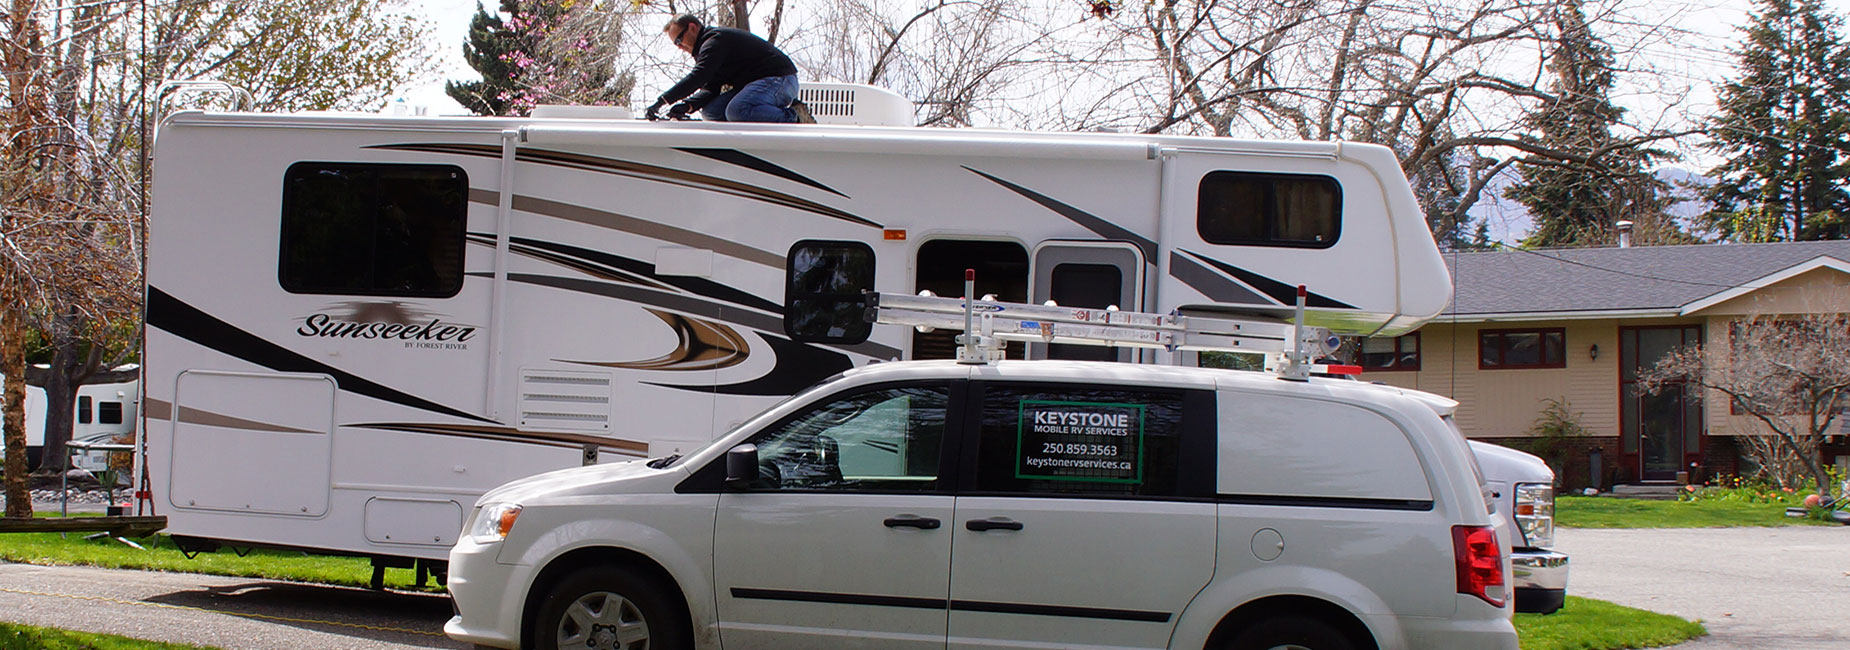 About Keystone RV Services, repairing and servicing all makes and models of RV's in and around the Kelowna area.